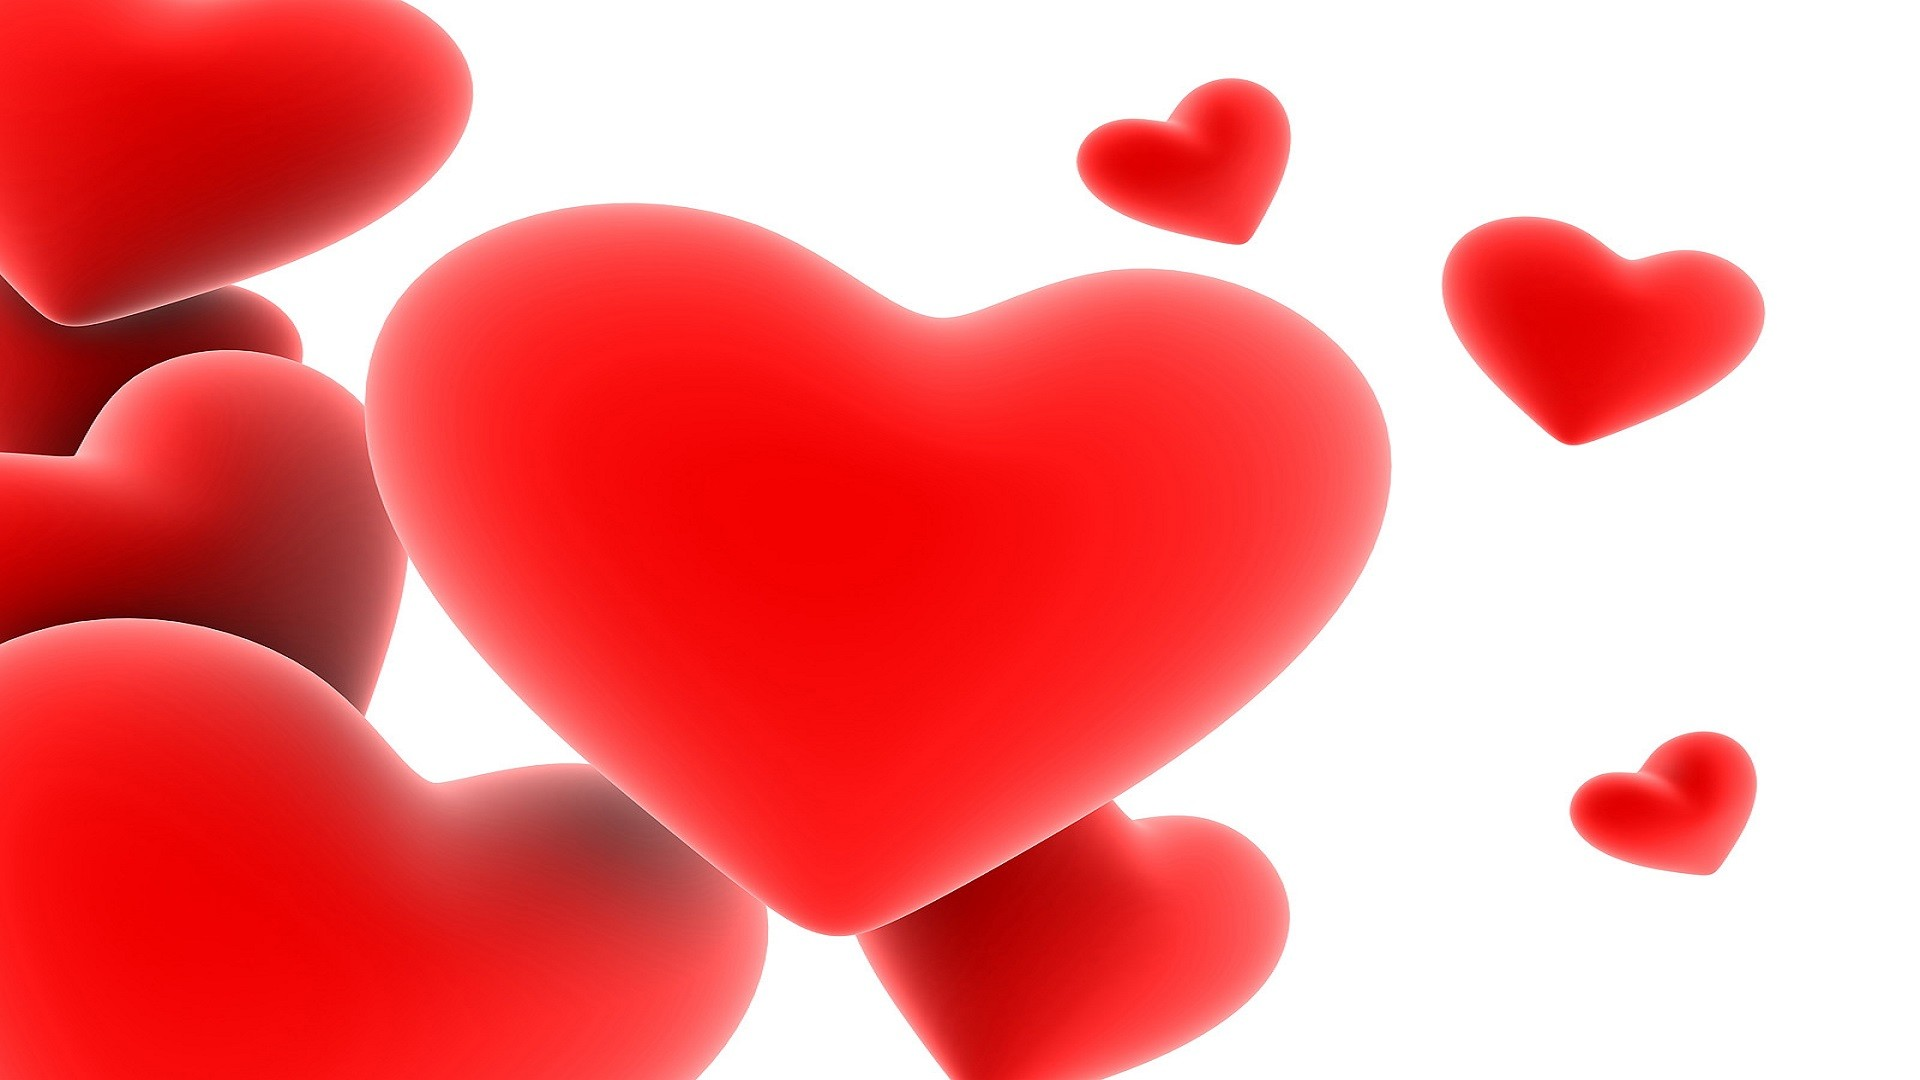 Red heart hd free wallpaper Latest Red Heart hd free wallpaper download  2016 …